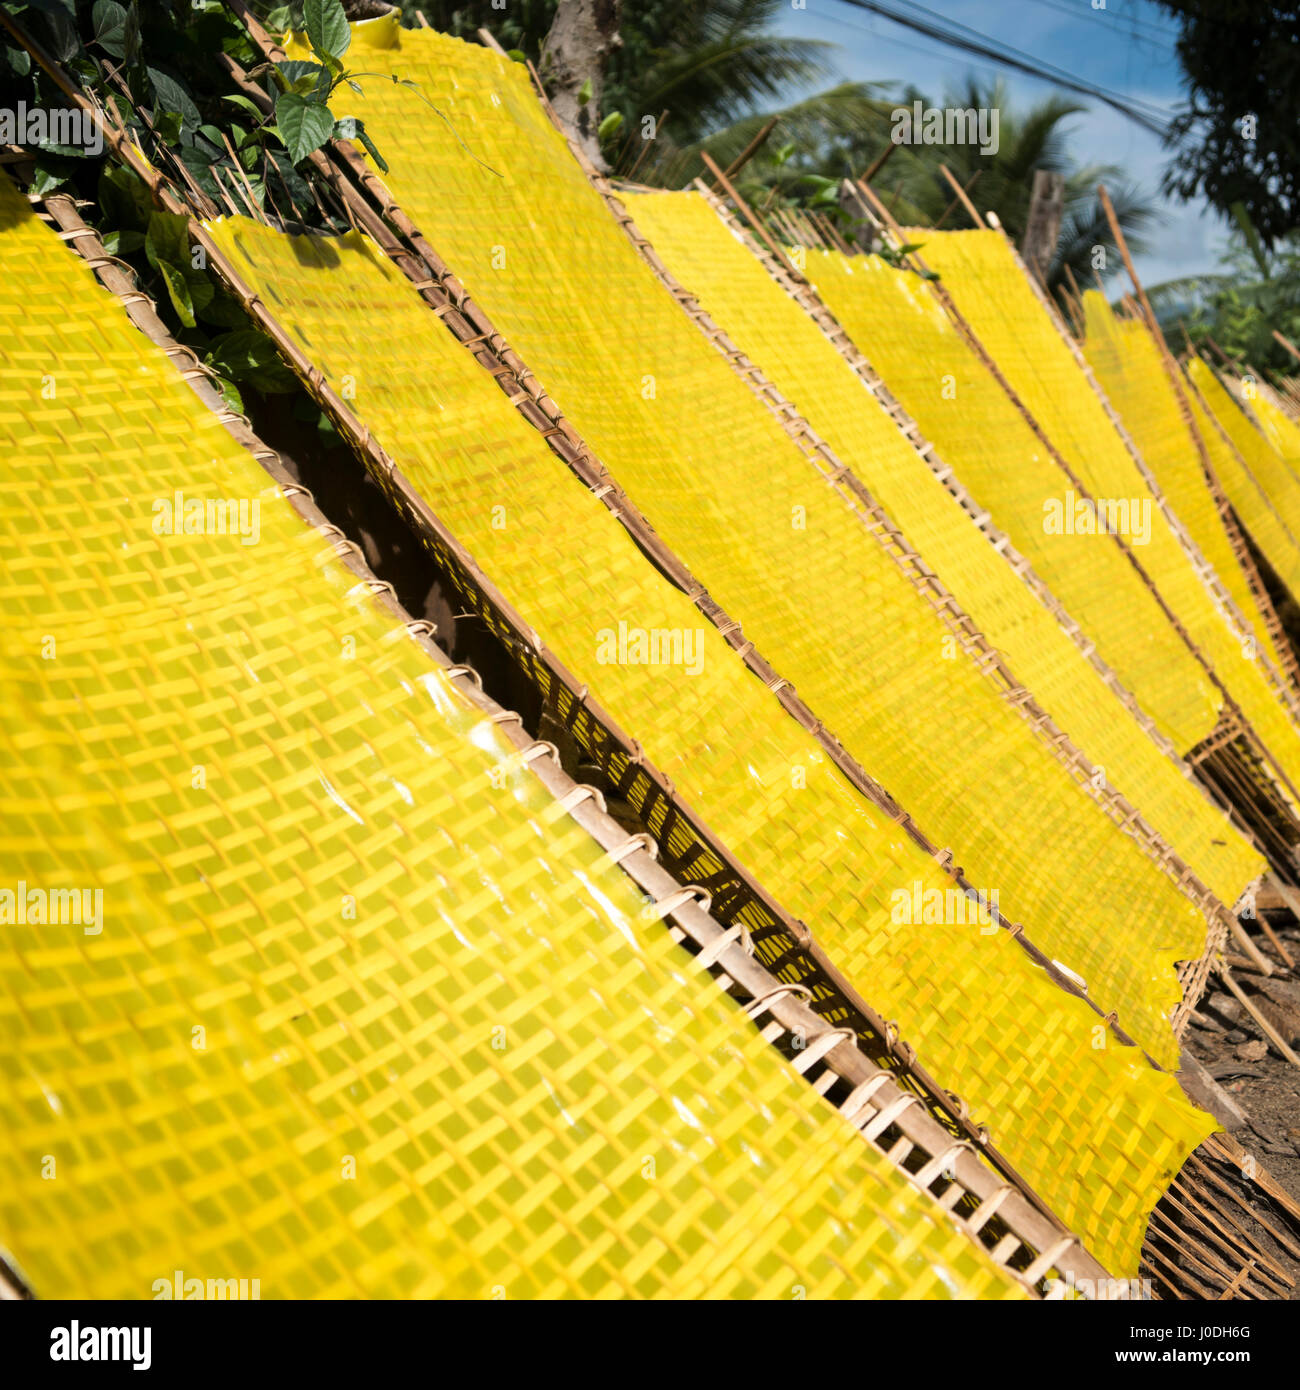 Square view of traditional yellow rice noodles in sheet form drying out in the sunshine in Vietnam. - Stock Image